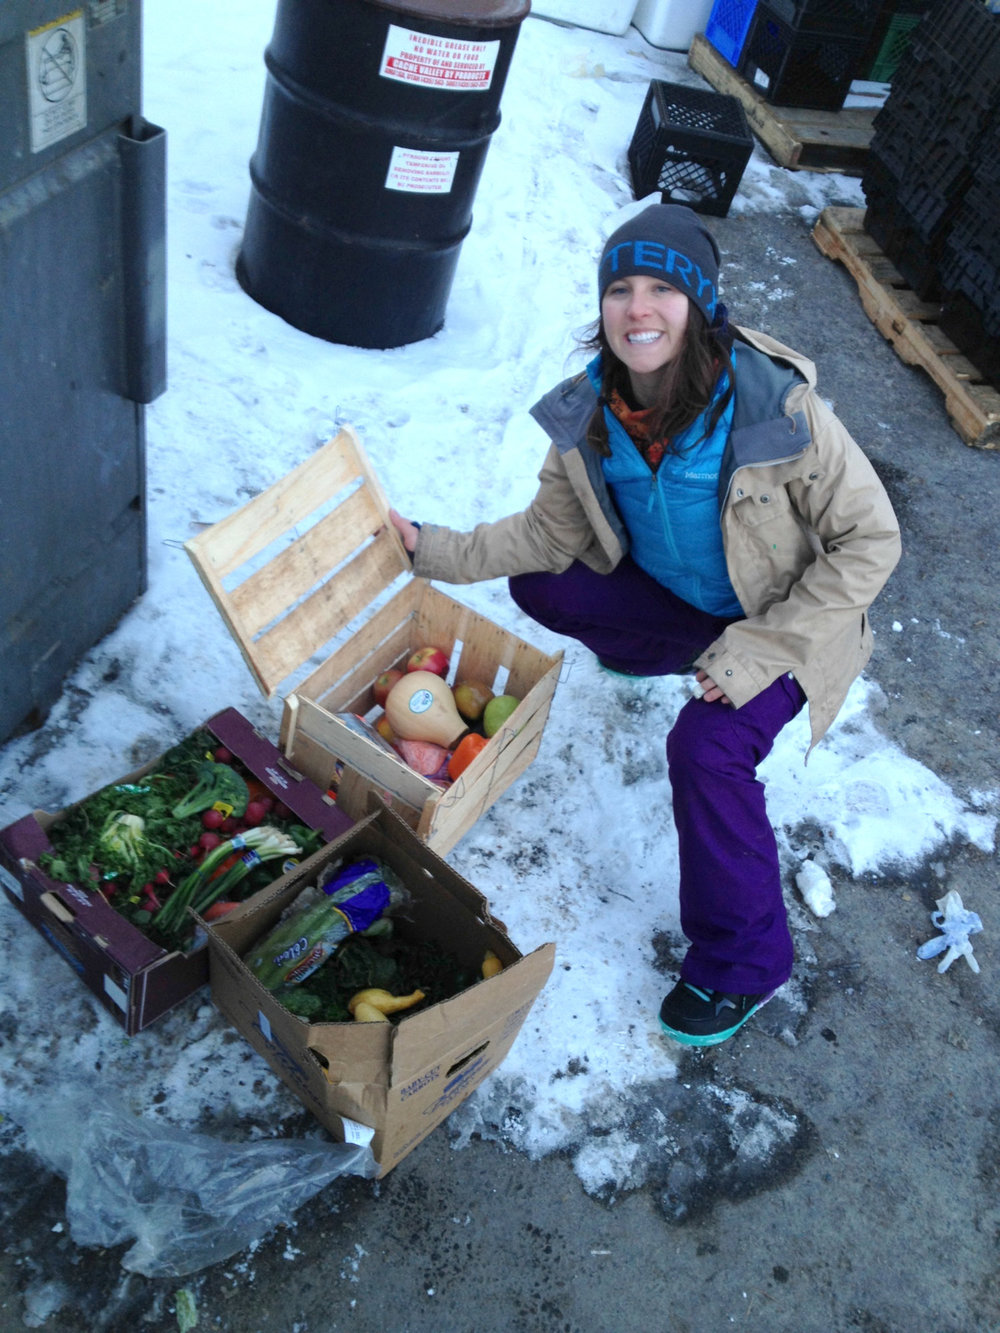 Ali dumpster diving in 2012, how it all started!